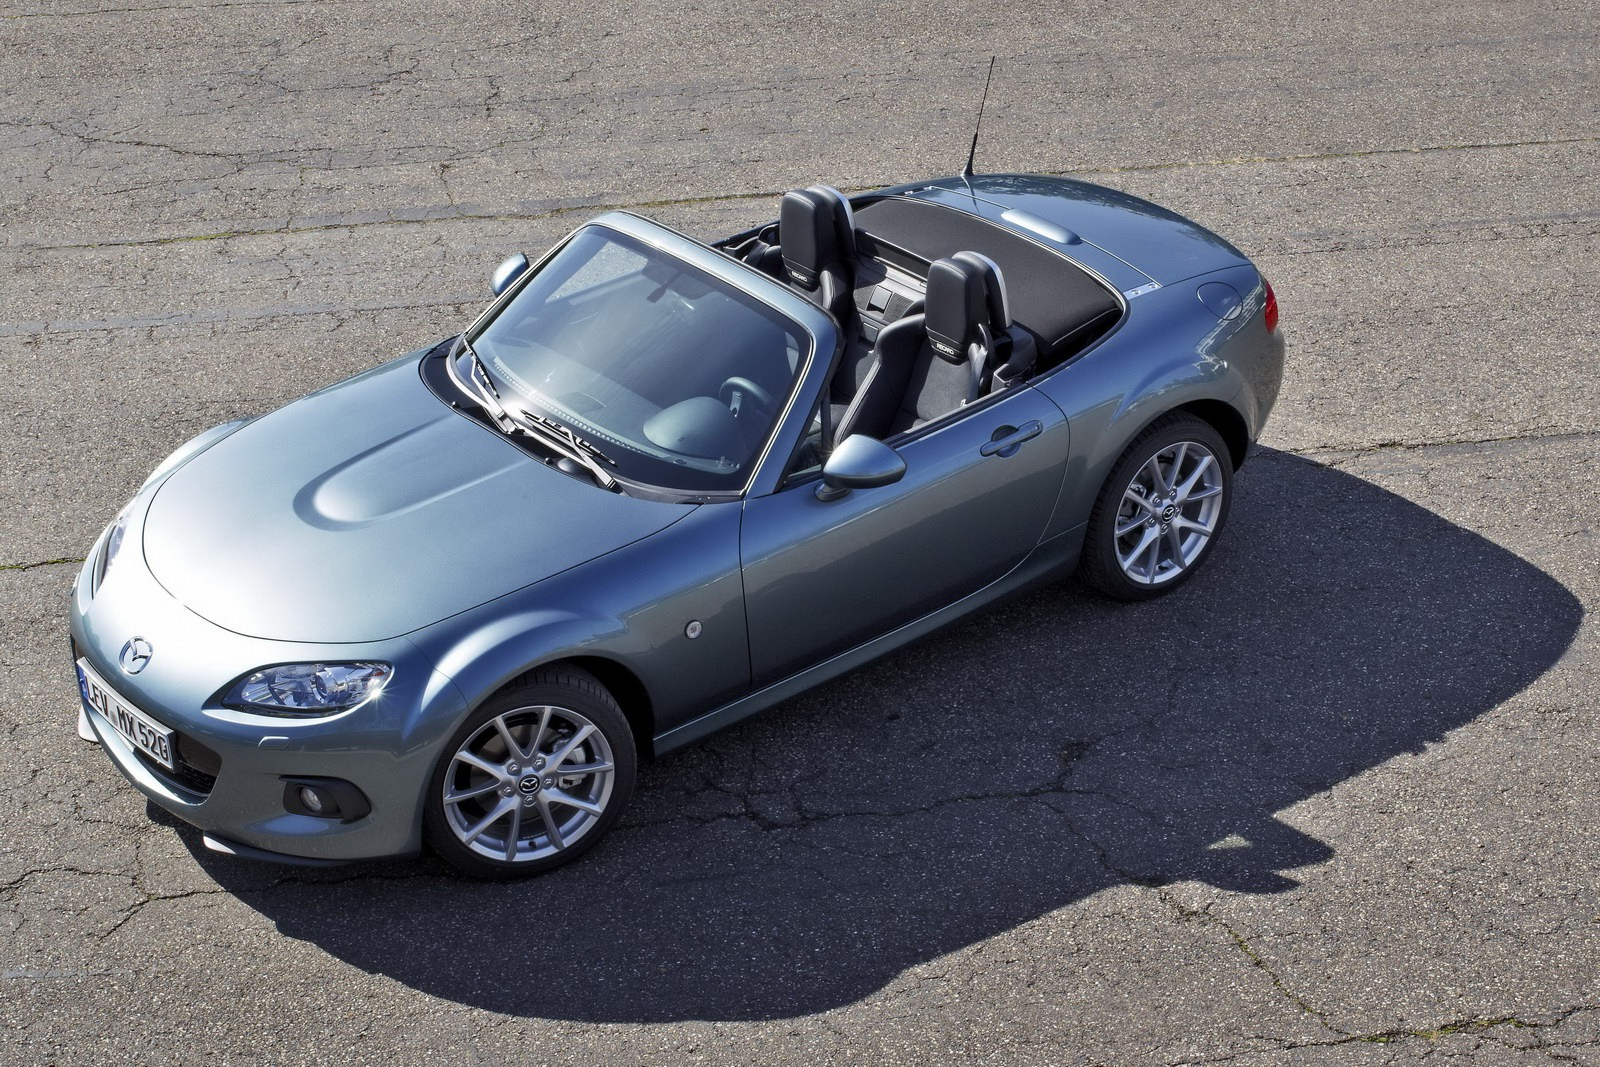 Mazda and Fiat Sign Deal for New Alfa Romeo Spider, will be Made in